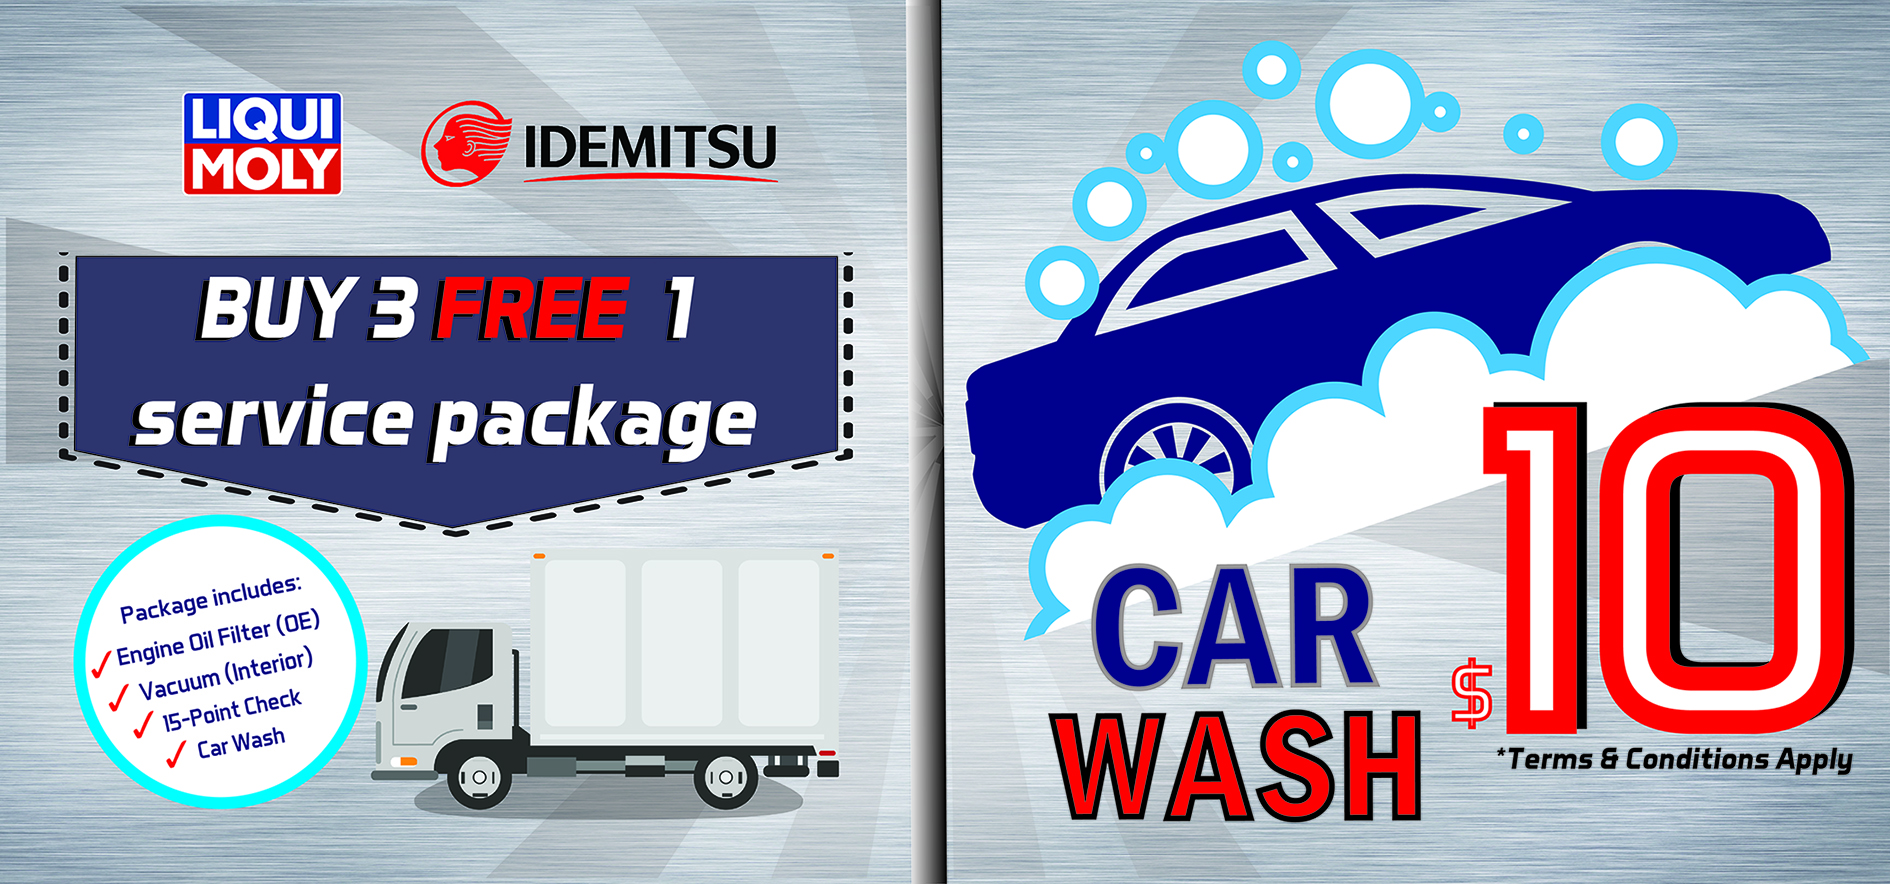 $10 Cheap Car Wash Service Singapore